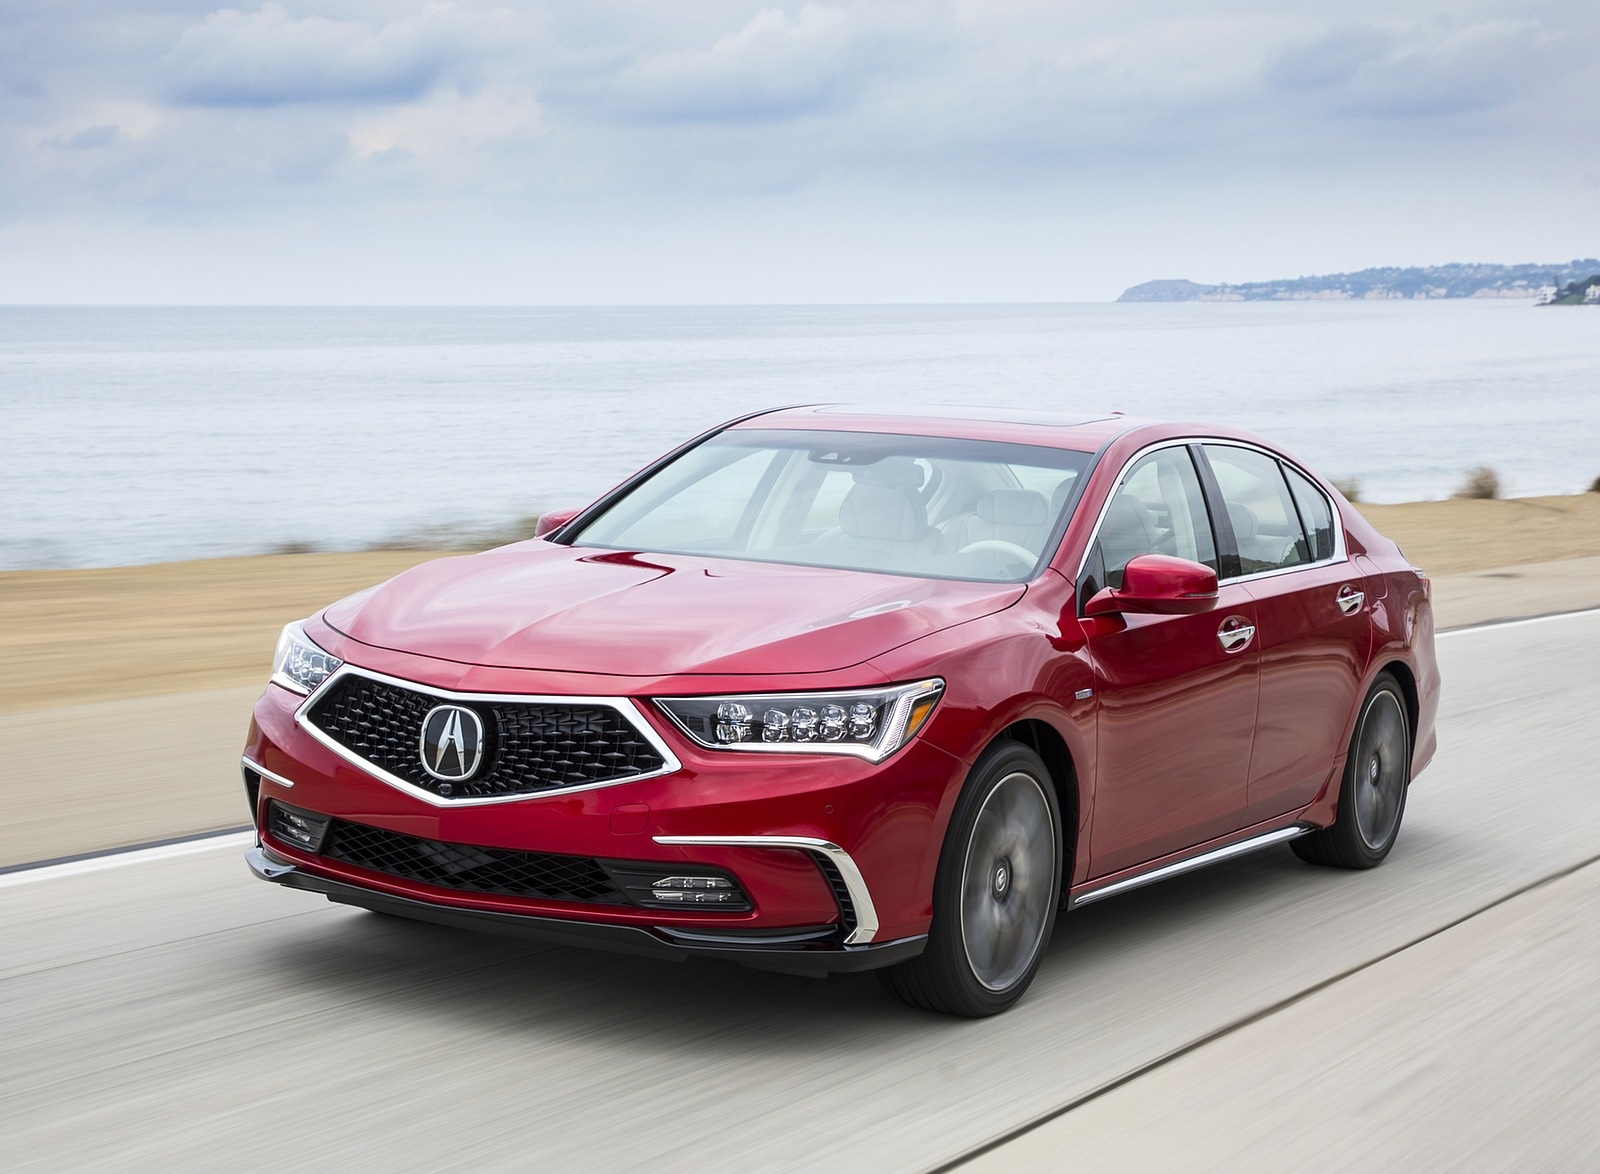 2018 Acura RLX Sport Hybrid Front Three-Quarter Wallpaper (2)